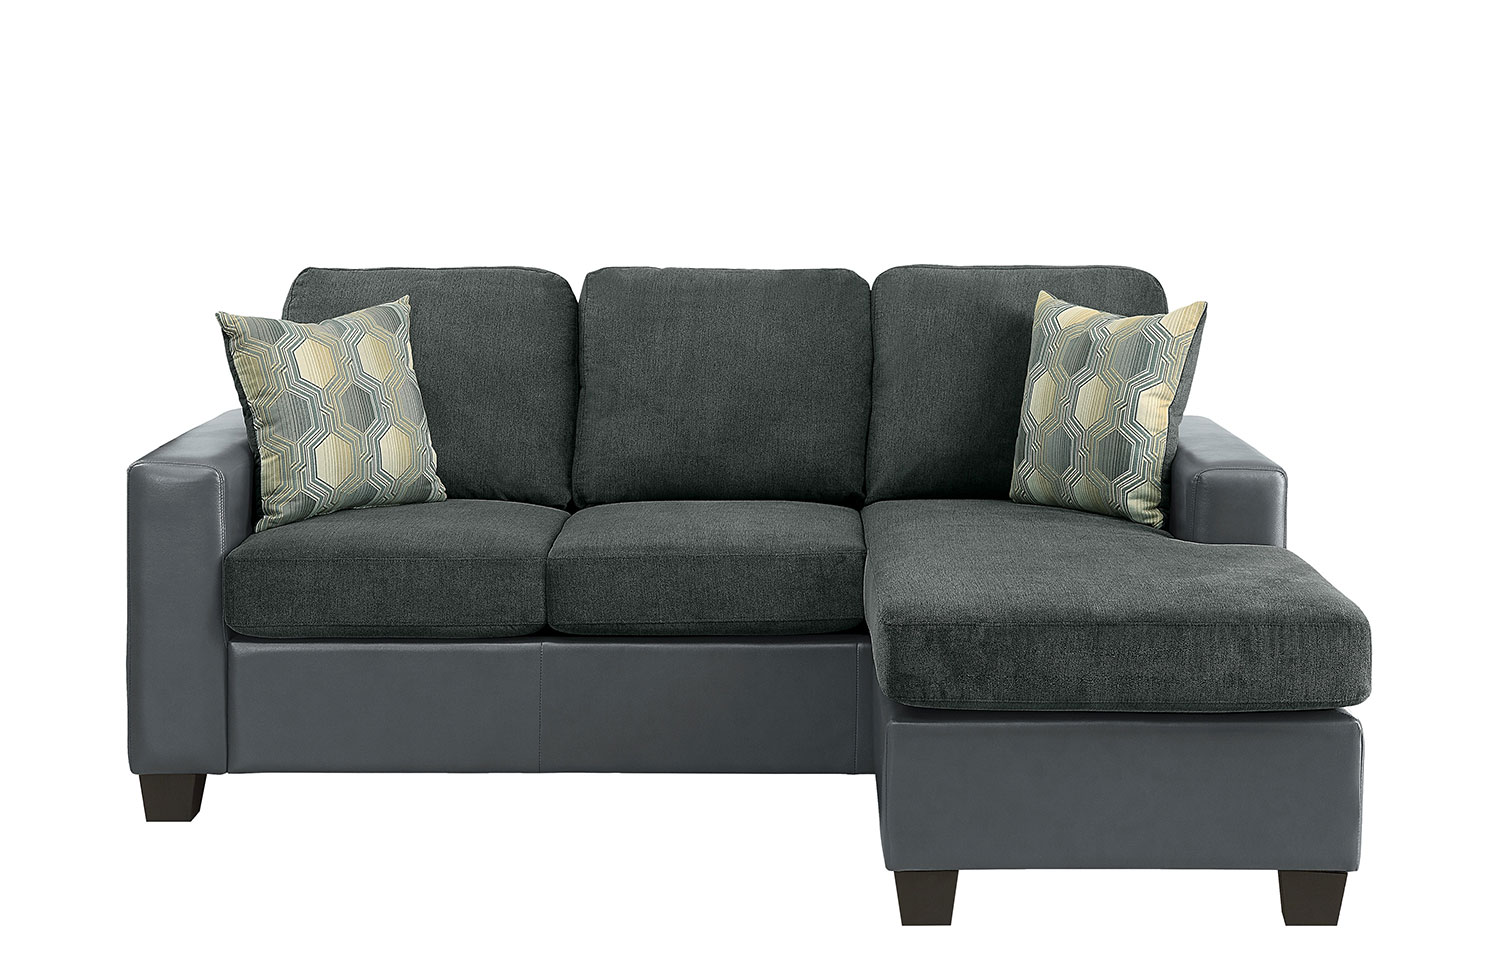 Homelegance Slater Reversible Sofa Chaise - Gray